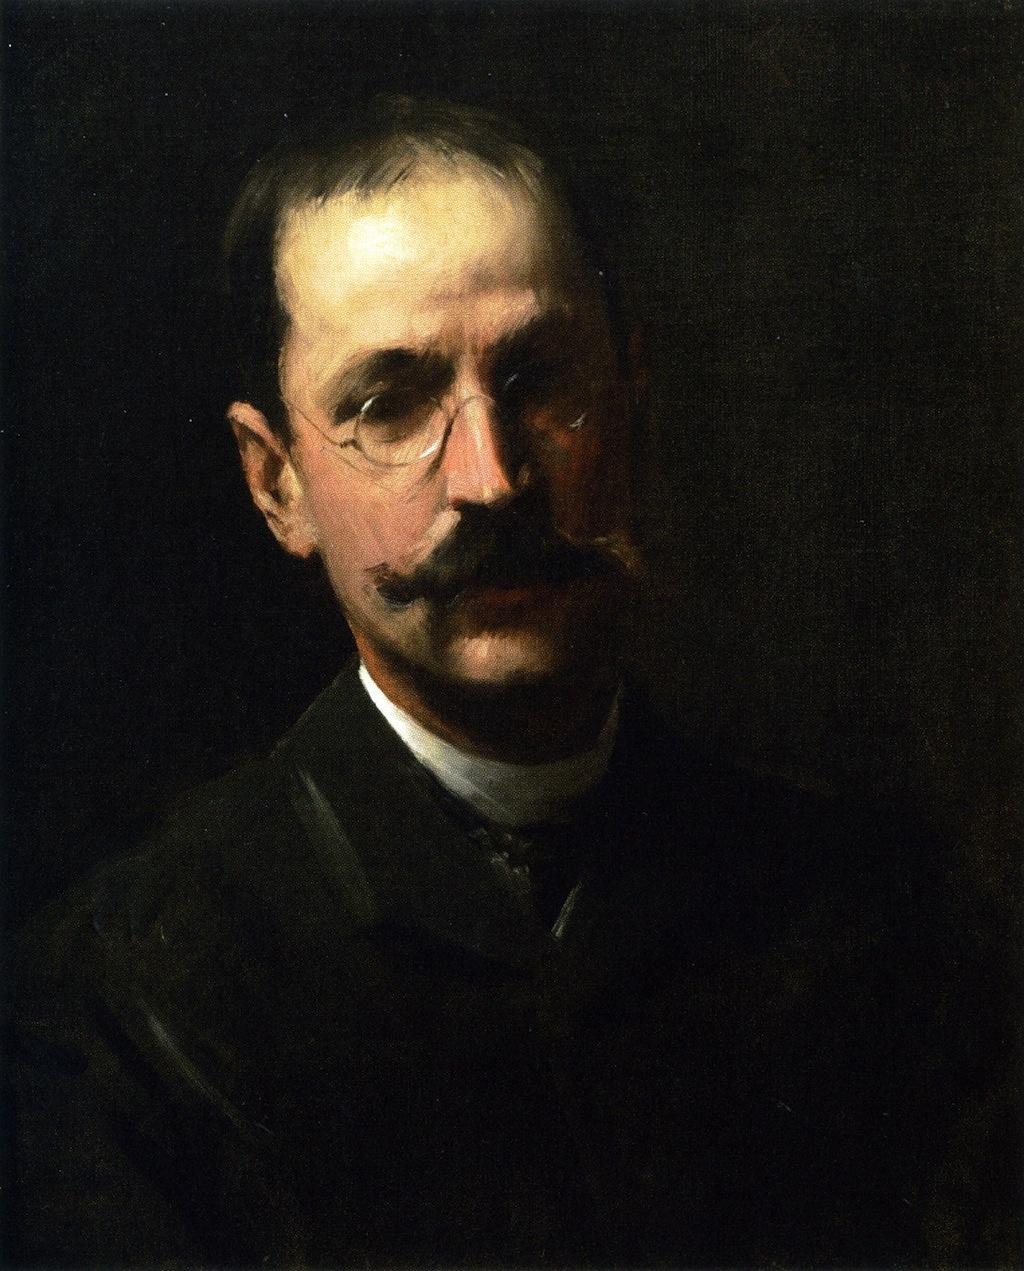 William Launt Palmer by William Merritt Chase, 1887